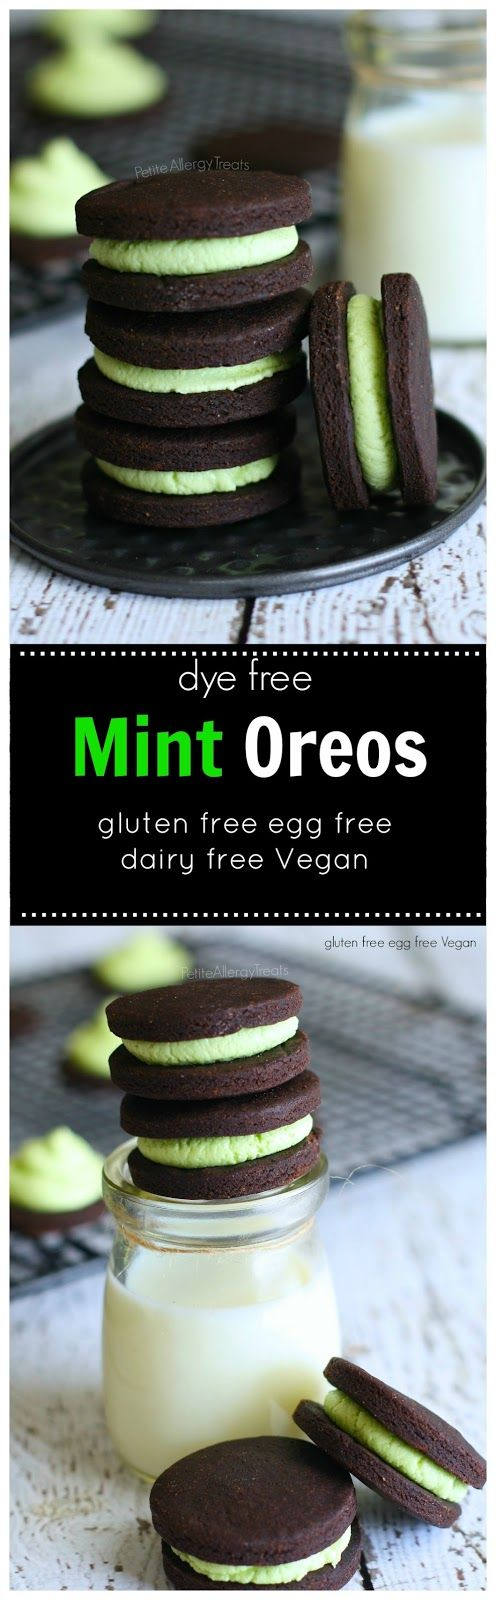 Mint Oreos (gluten free Vegan egg free)- Chocolate mint cookies colored with just a touch of spinach. gluten free, dairy free, Vegan. #EBHolidayBakeOff2015